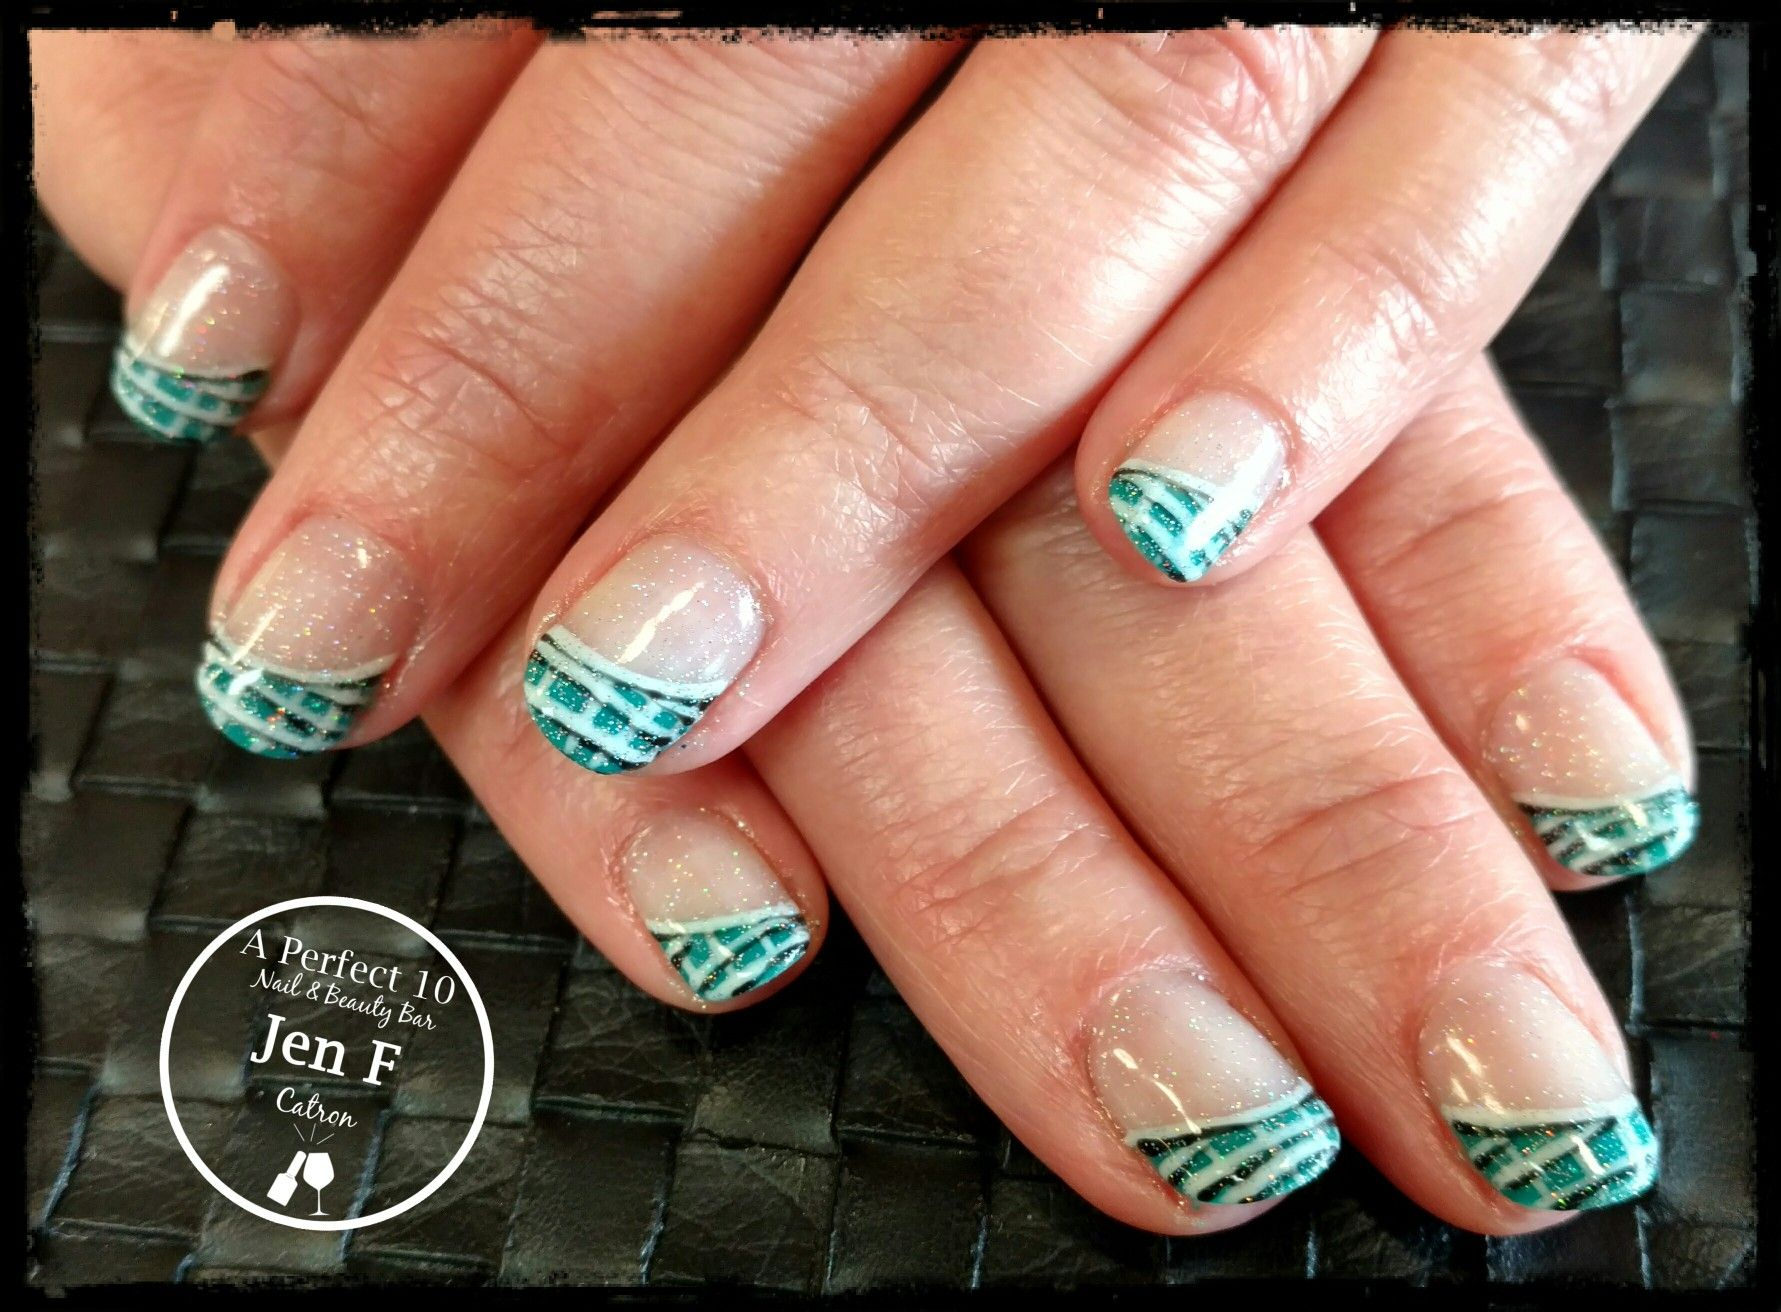 Fun French nail art | My nail art :) | Pinterest | French nail art ...